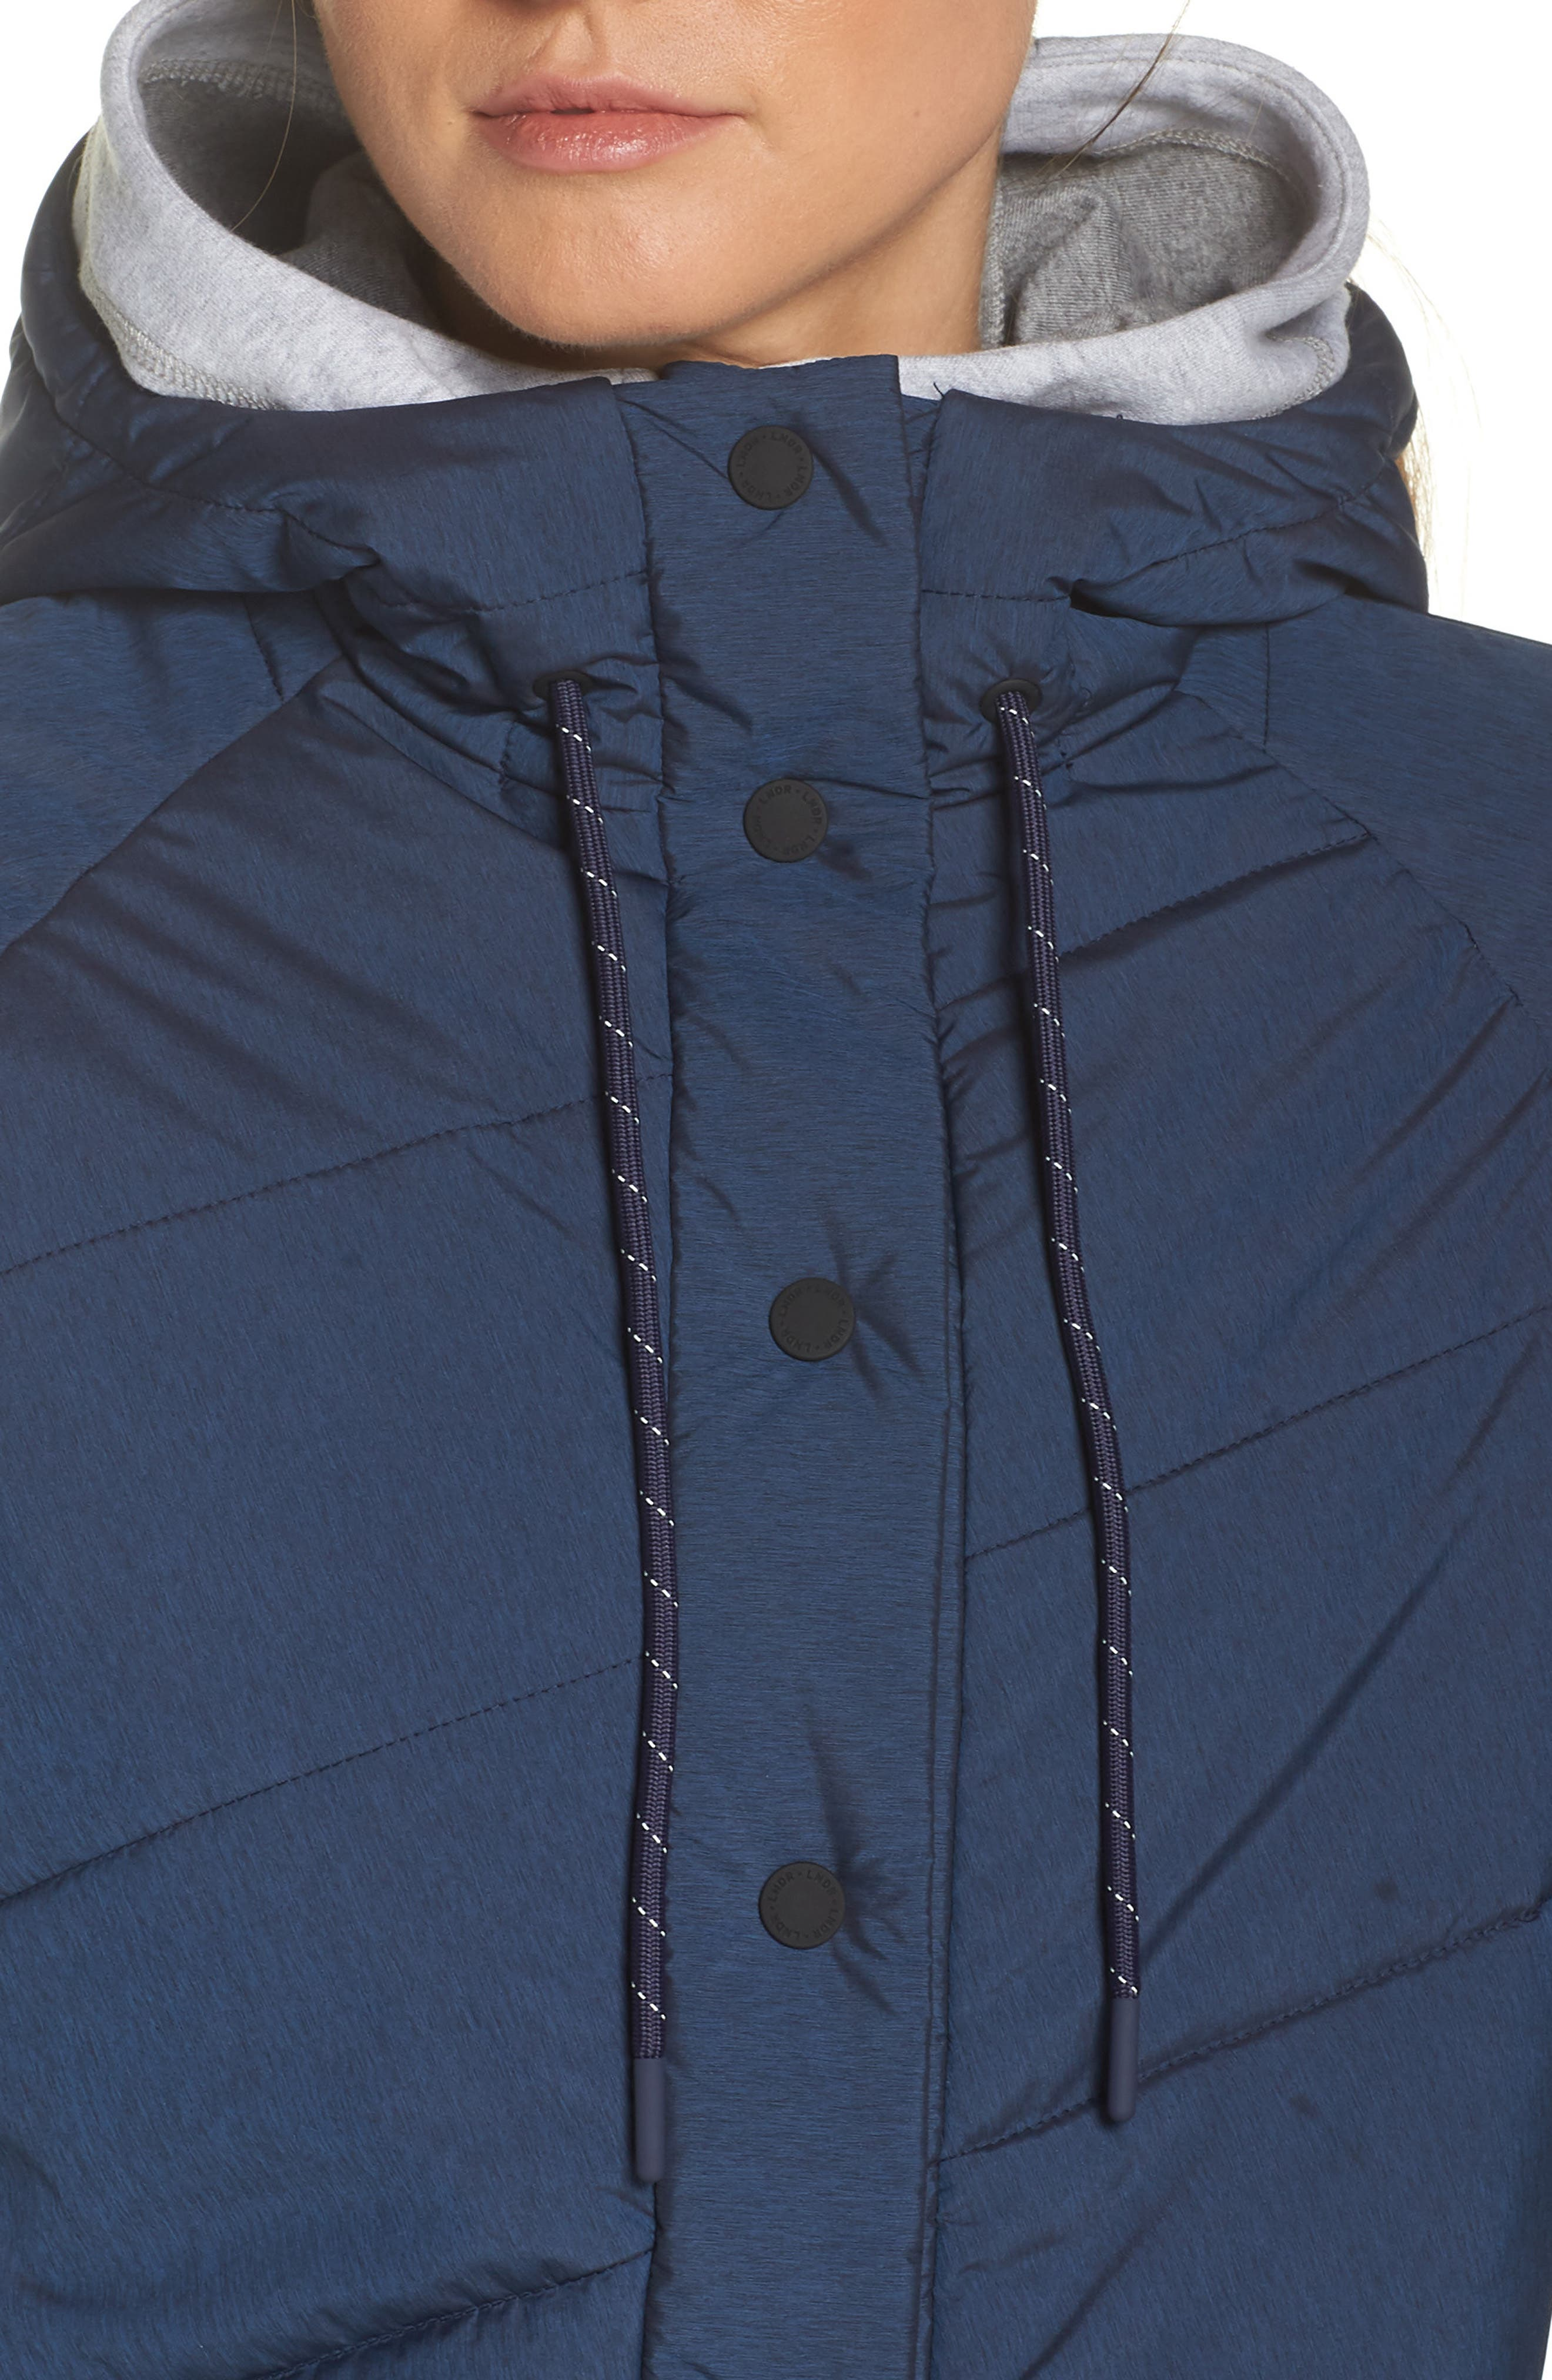 Toast Water Repellent Hooded Jacket,                             Alternate thumbnail 4, color,                             NAVY MARL